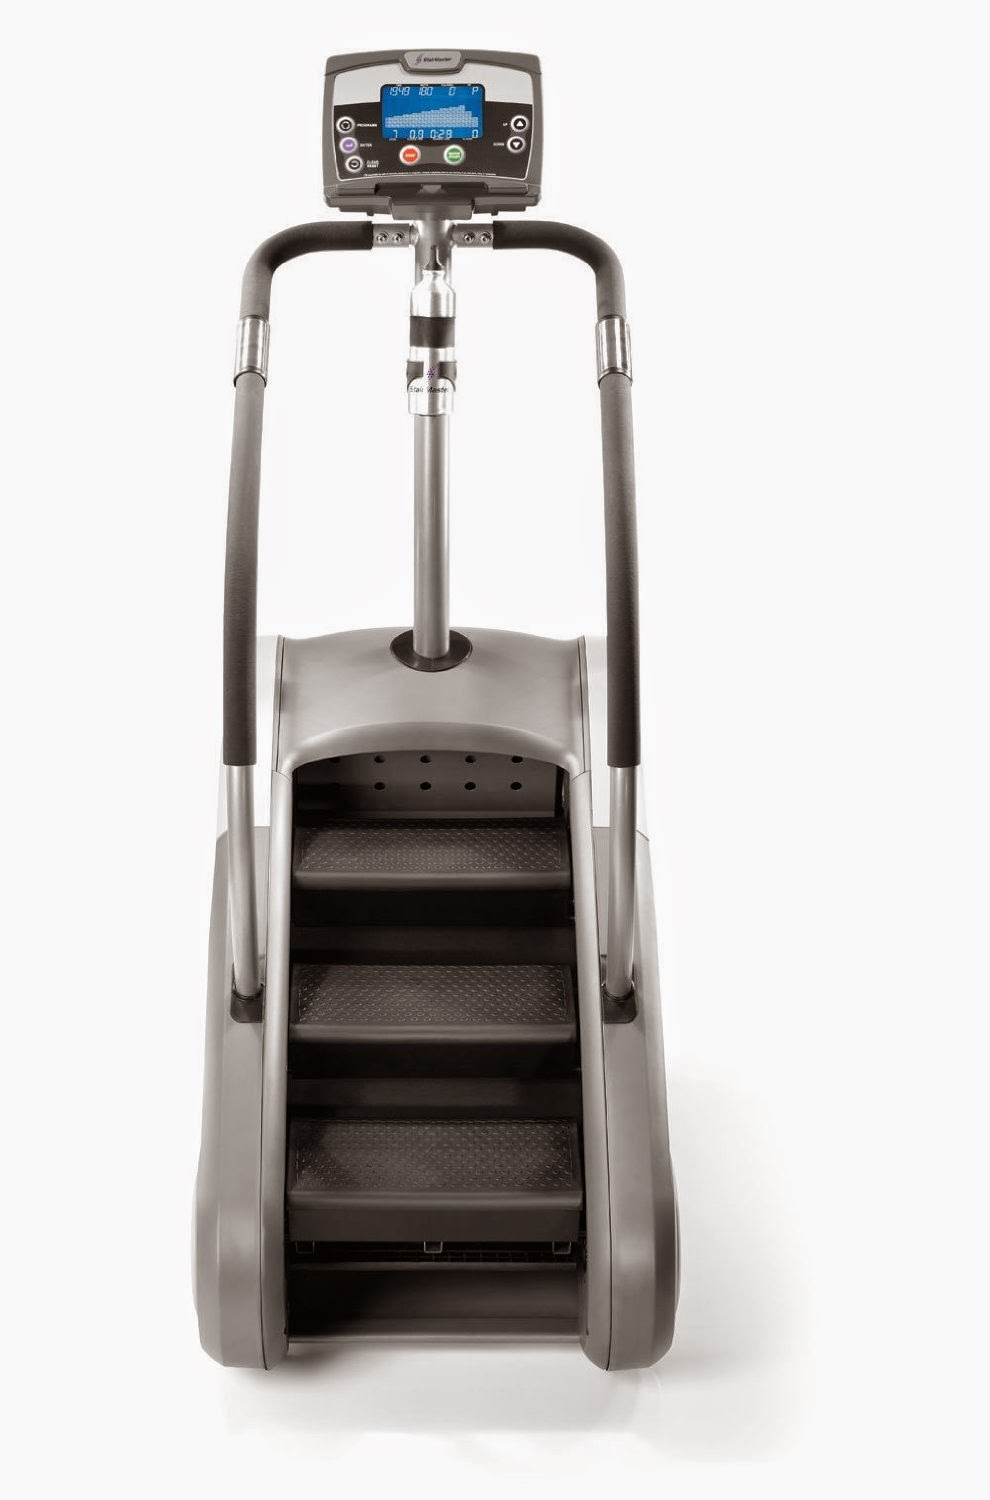 StairMaster StepMill SM3, review and compare with StairMaster StepMill SM5